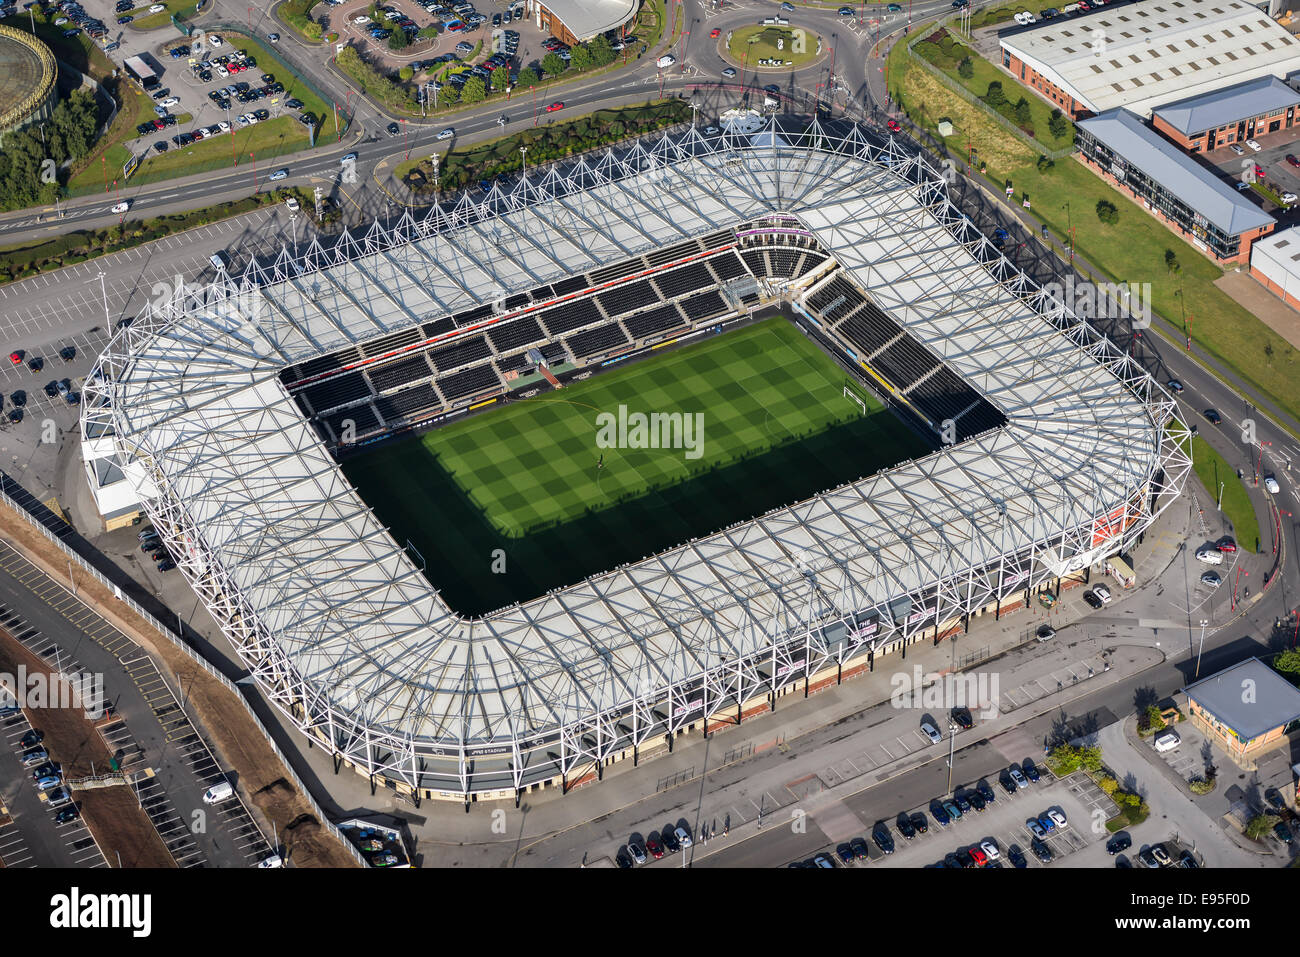 An Aerial View Of The Ipro Stadium Home Of Derby County Fc Stock Photo Alamy